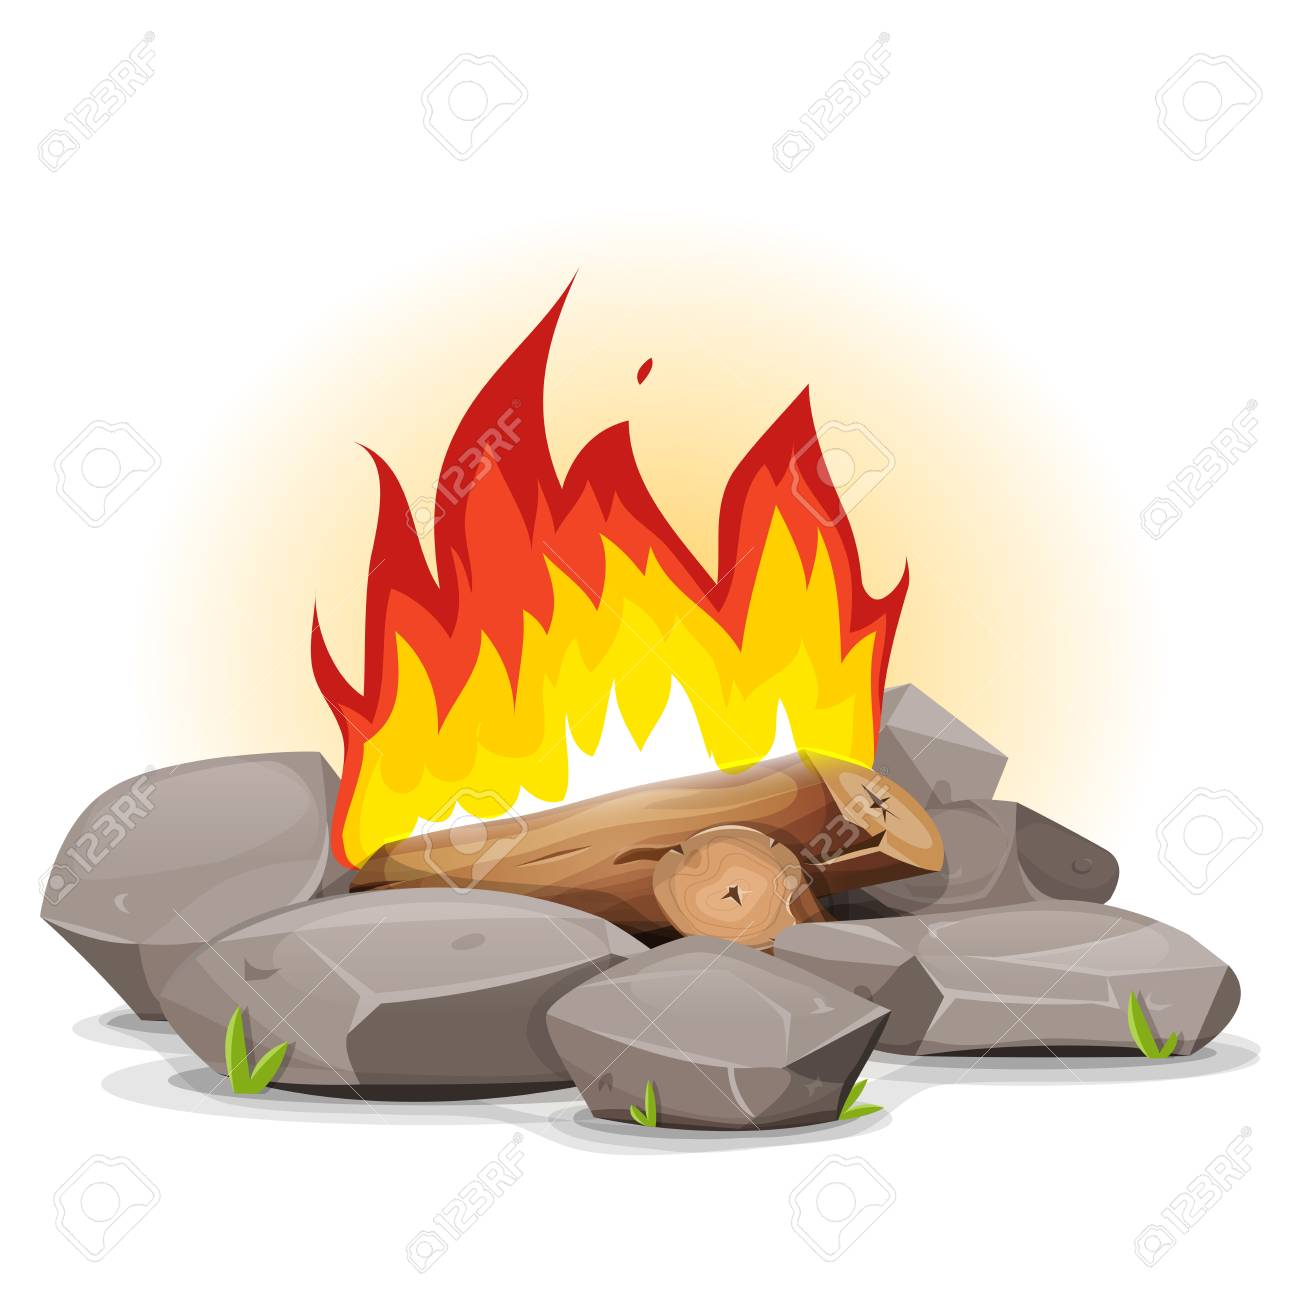 illustration of a cartoon campfire with burning flames and stones rh 123rf com campfire cartoon clipart campfire action songs